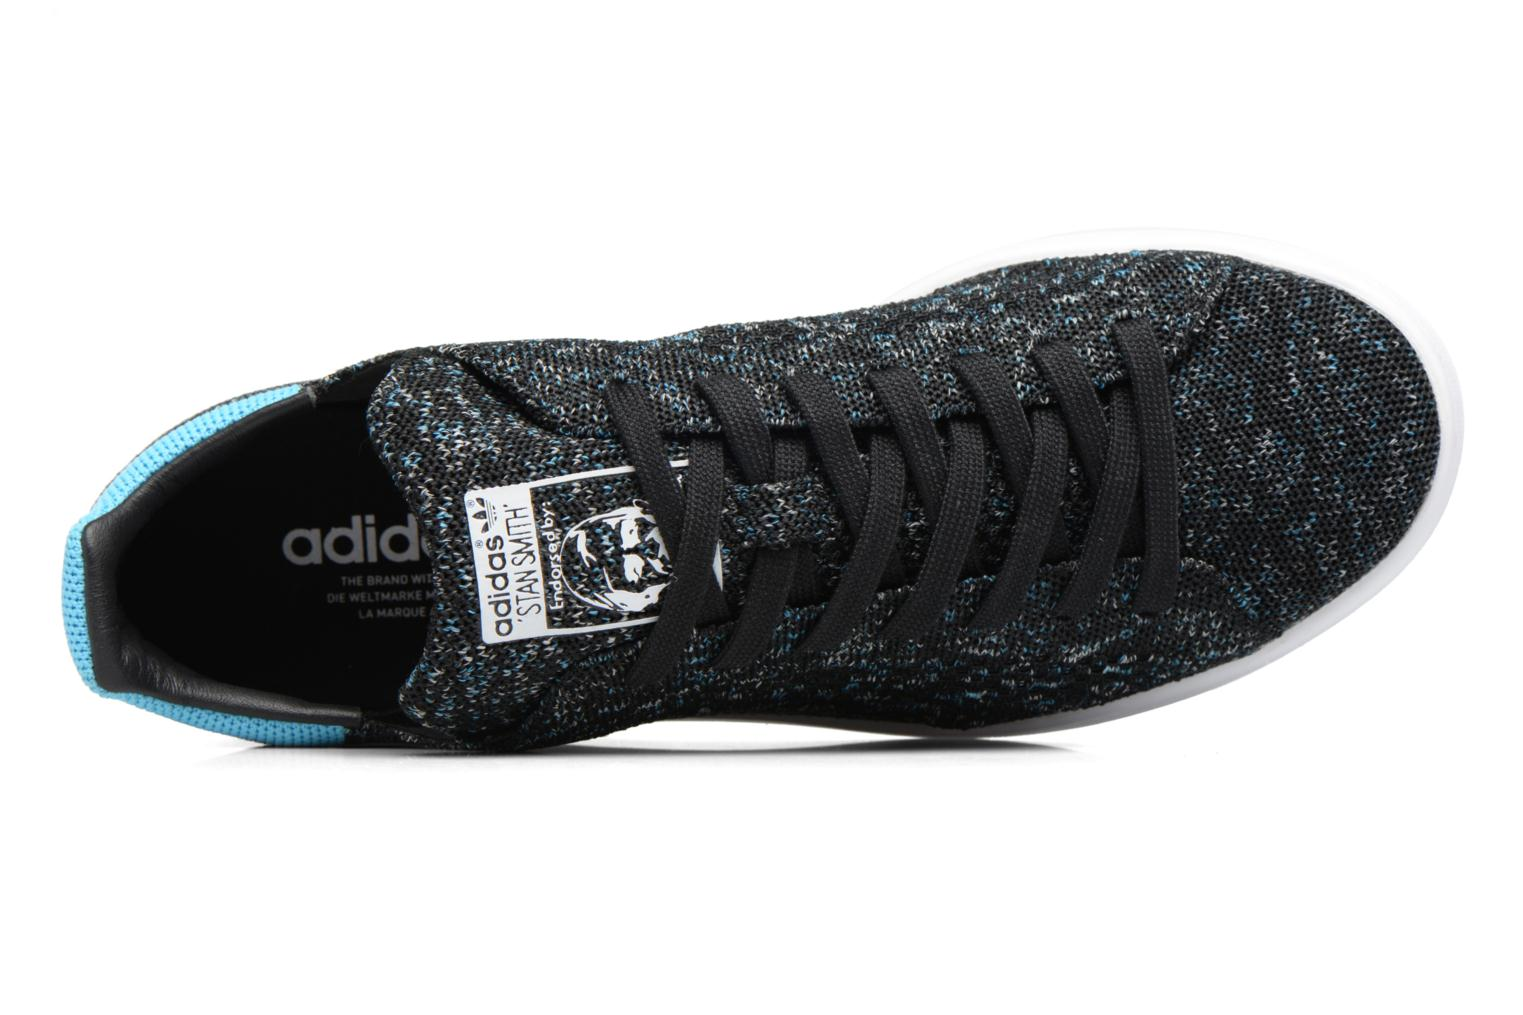 Carbon/Carbon/Blacra Adidas Originals Stan Smith Pk (Noir)